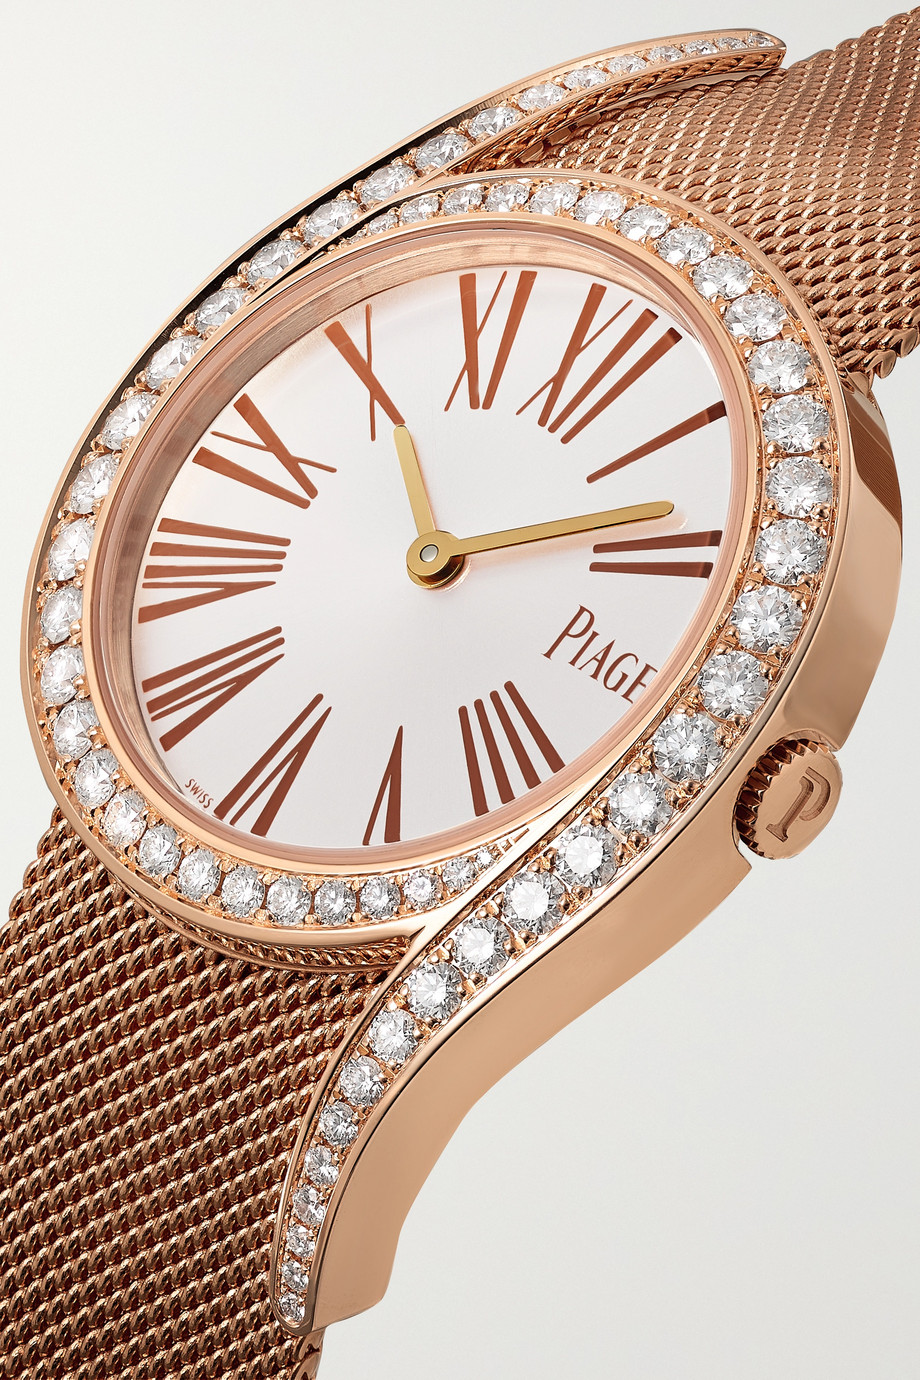 Piaget Limelight Gala 32mm 18-karat rose gold and diamond watch